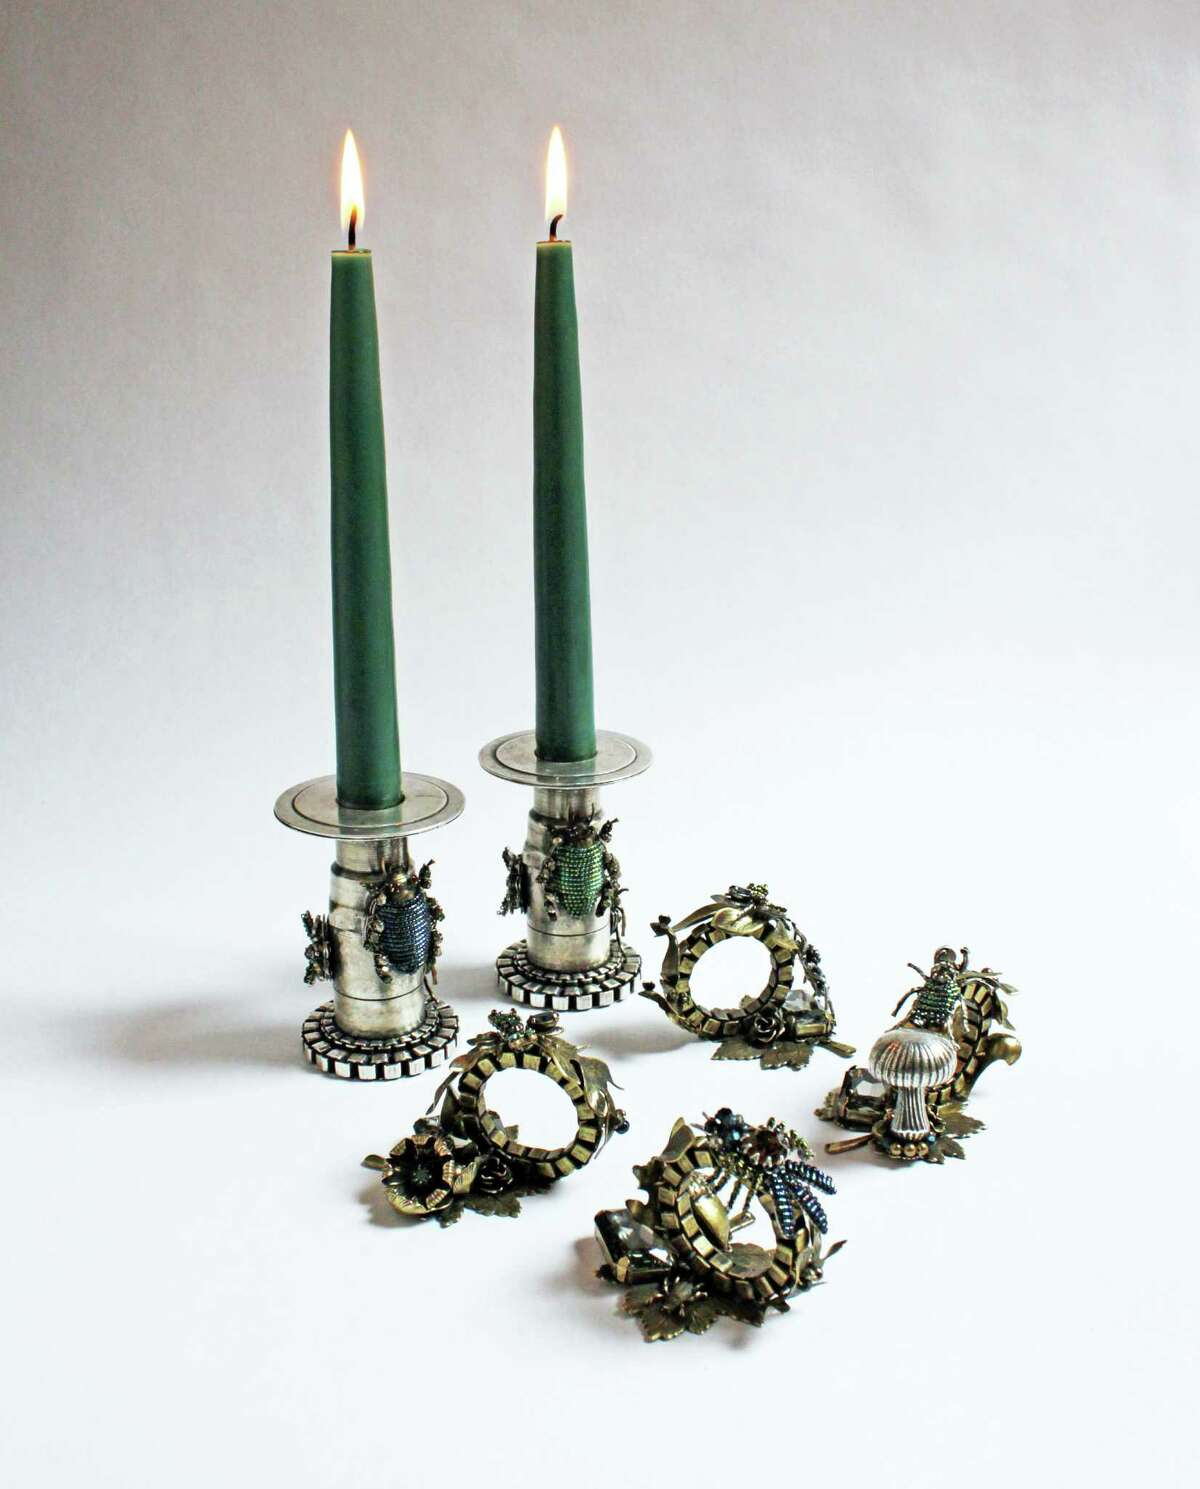 Jewelry brand Miriam Haskell has launched a home collection including nature-inspired, plated brass and silver candlesticks, $1,360 per pair, and plated brass napkin rings, $460 each.